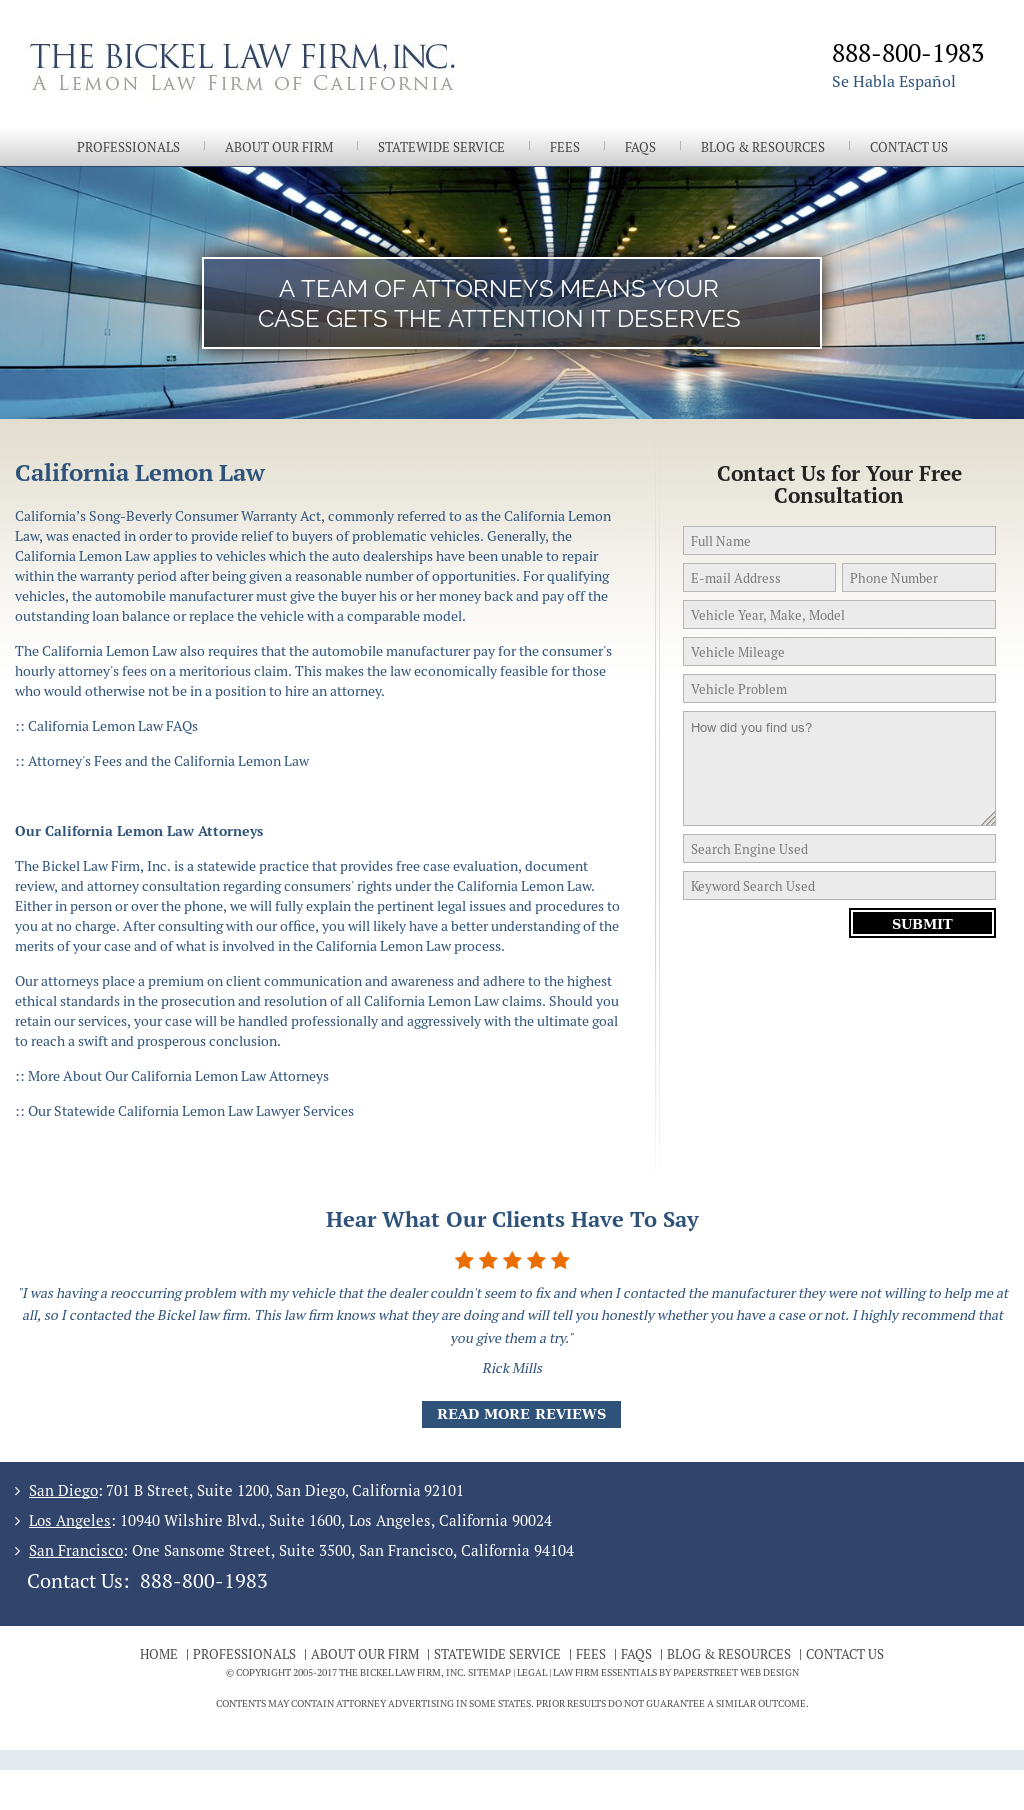 California Lemon Law Attorneys Bickel Law Firm Inc >> The Bickel Law Firm Competitors Revenue And Employees Owler